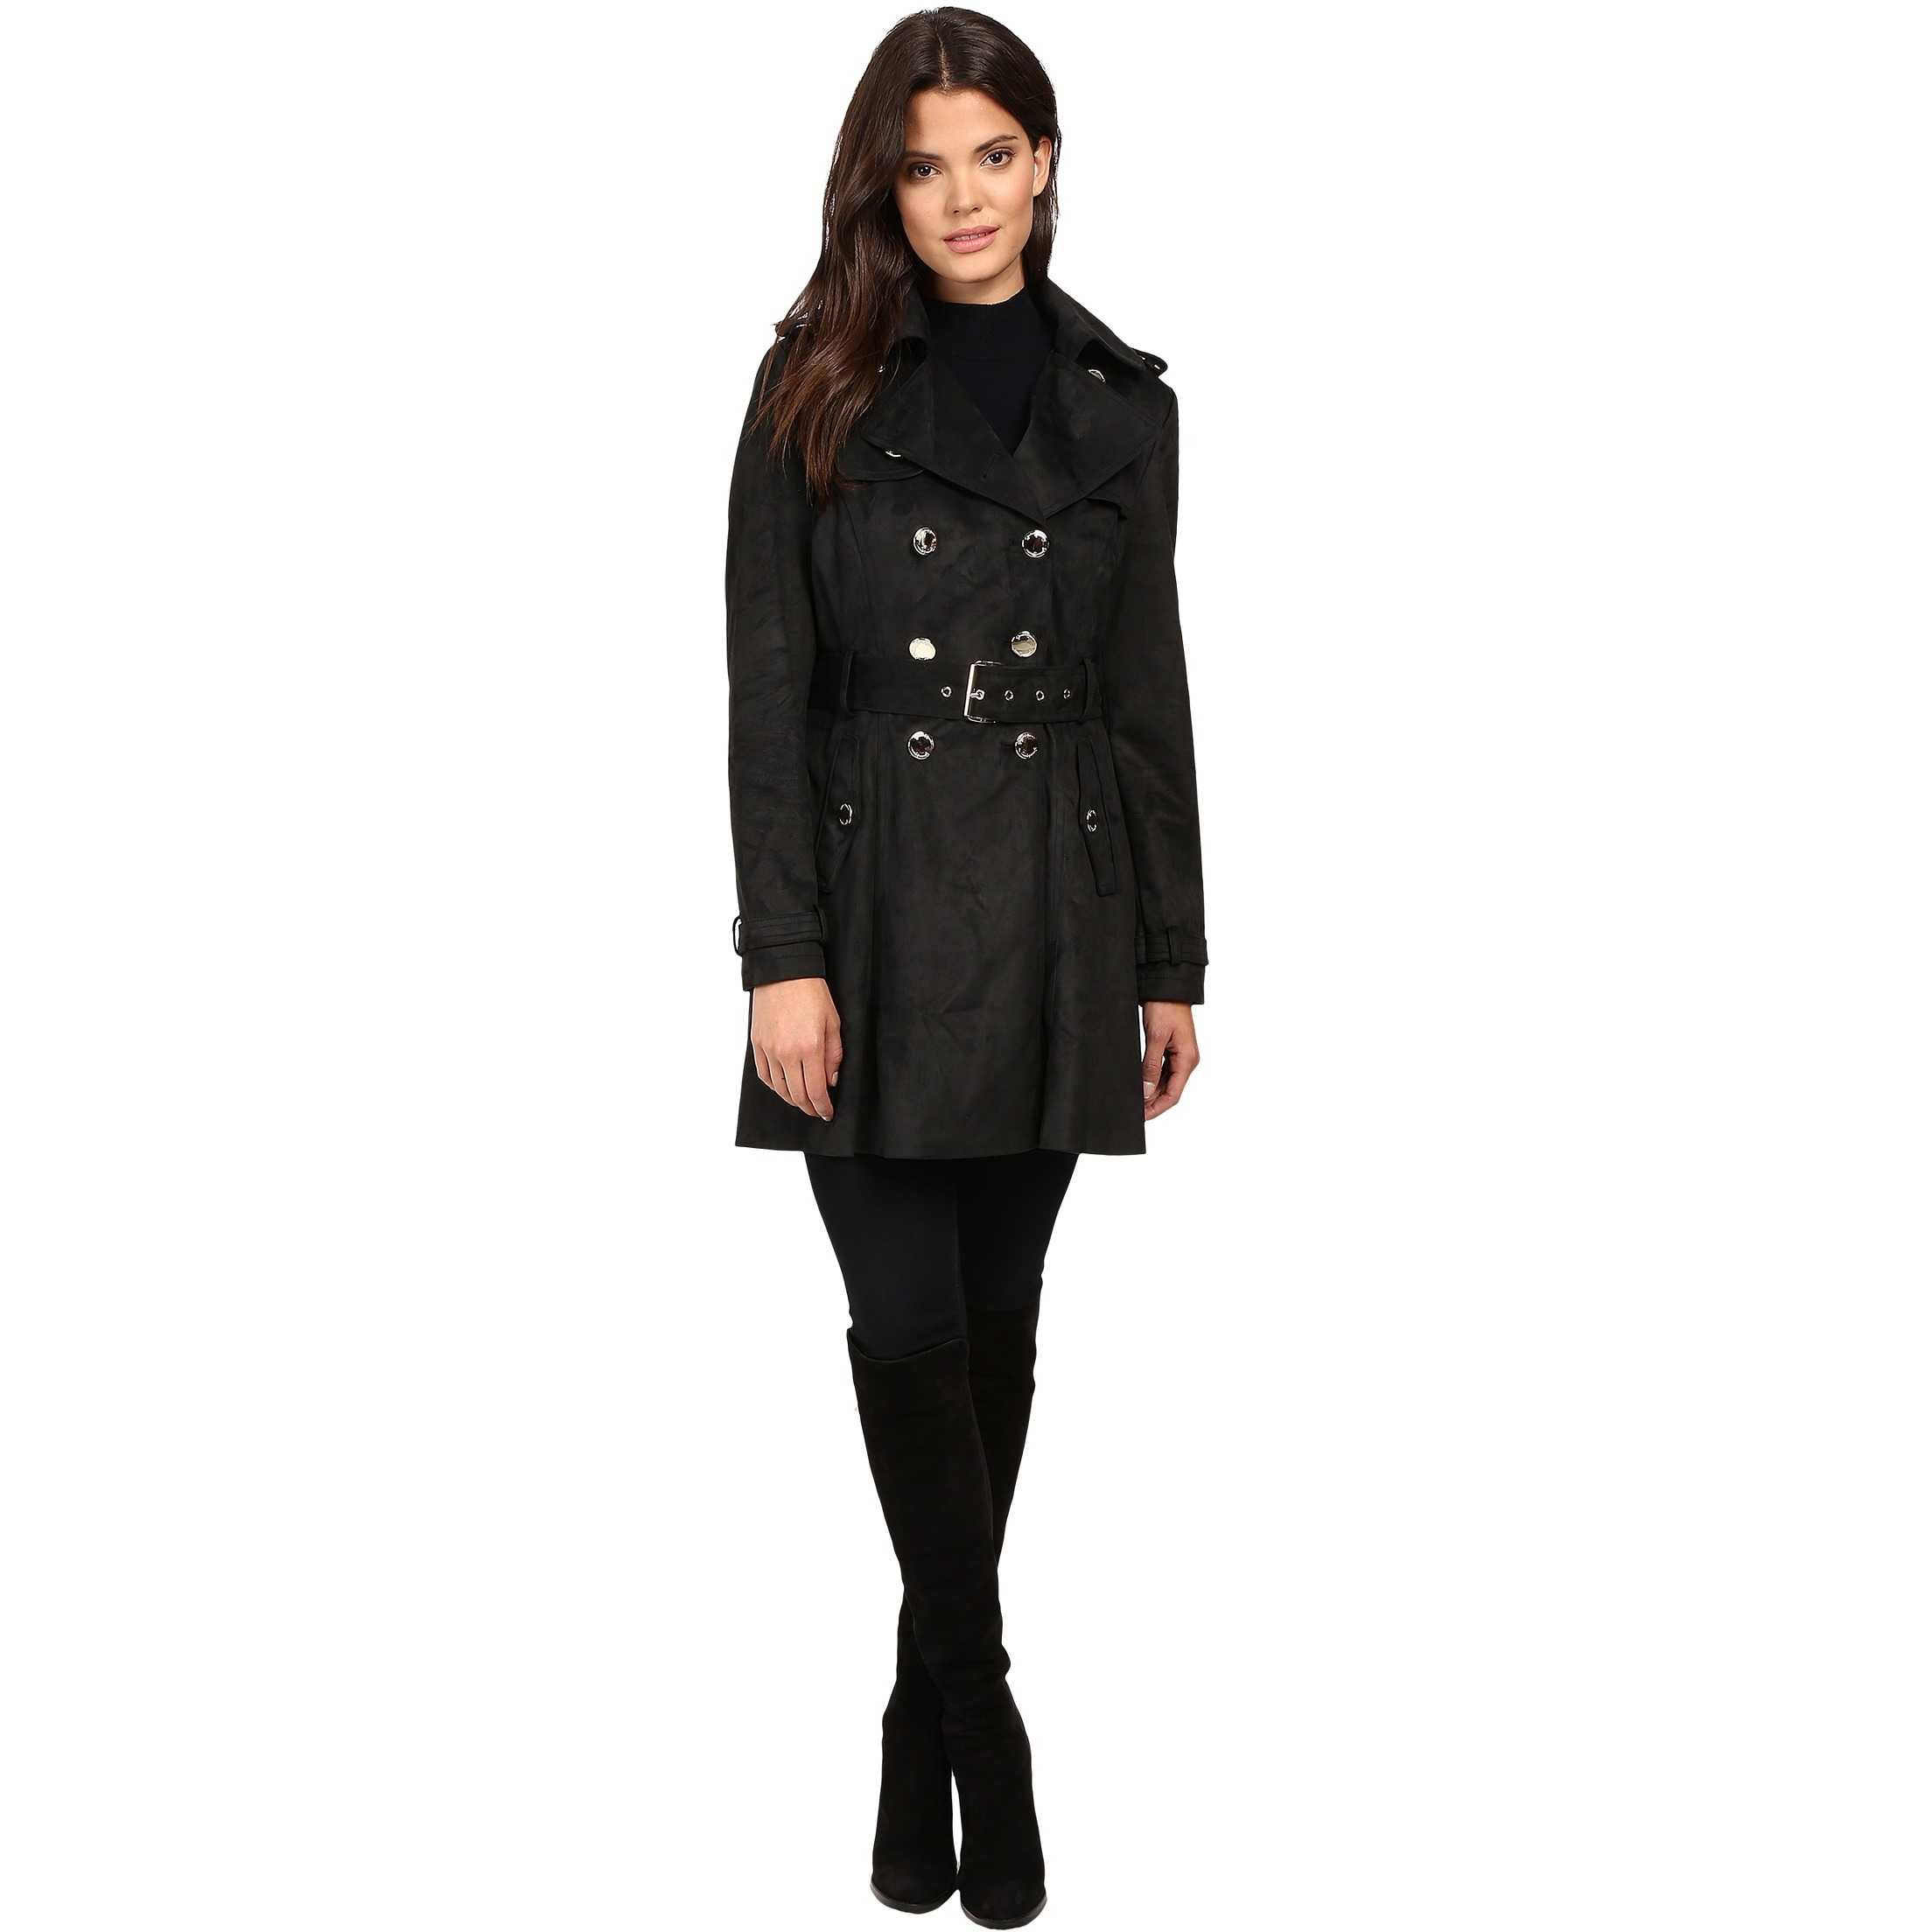 Jessica Simpson S Rain Trench with Double Breasted Buttons Black pentru dama